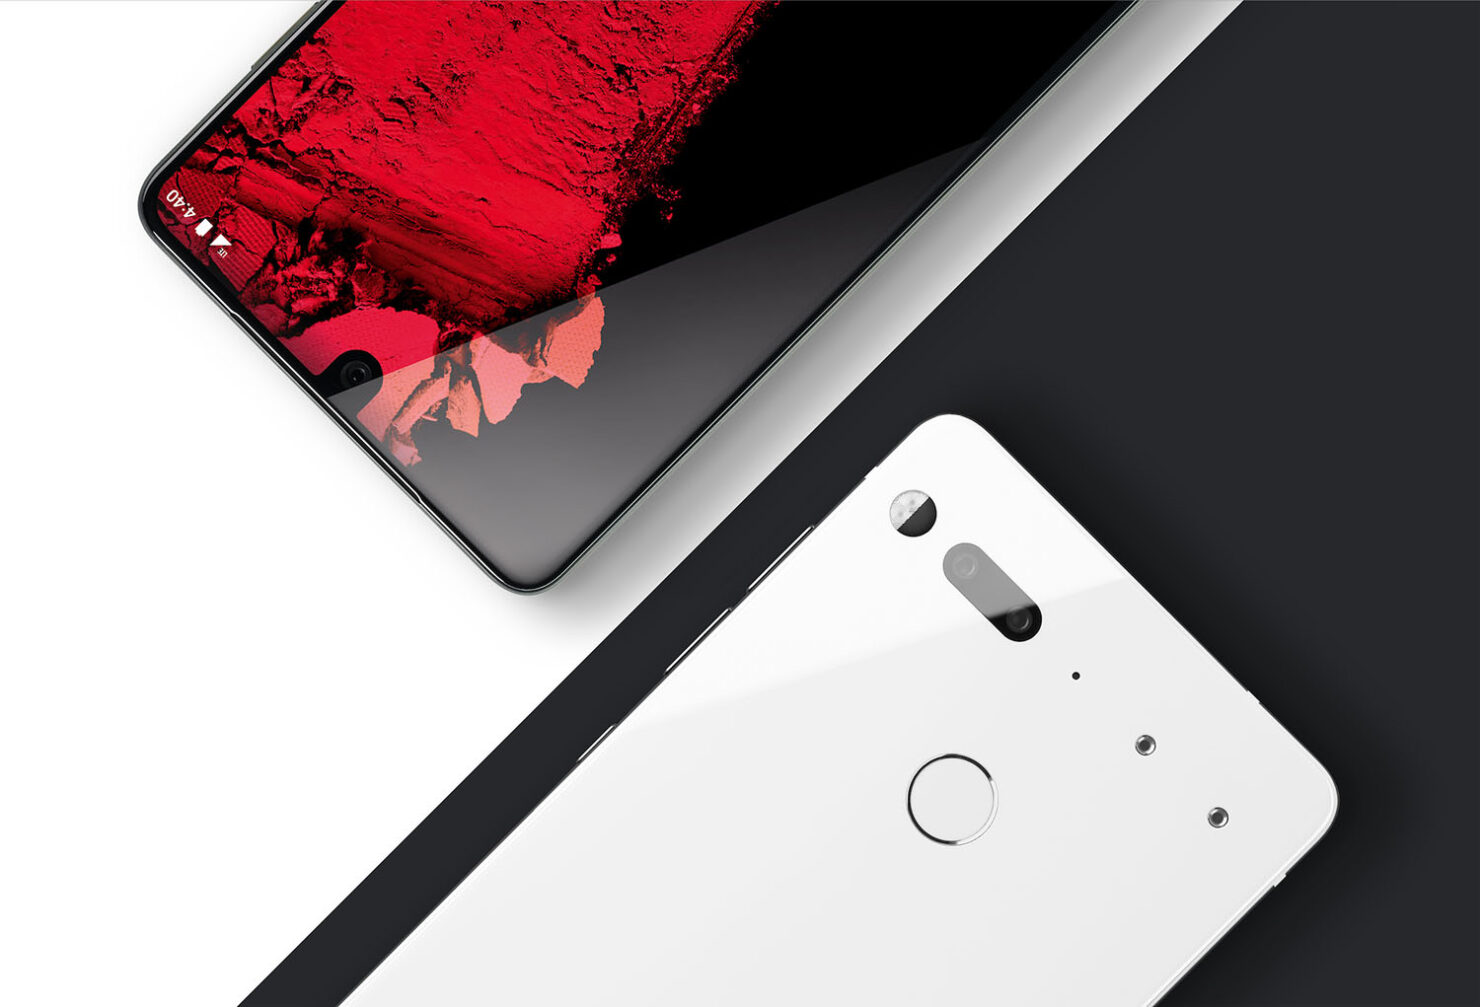 Essential PH-2 Could Be Incoming as Company Commences Hiring Spree